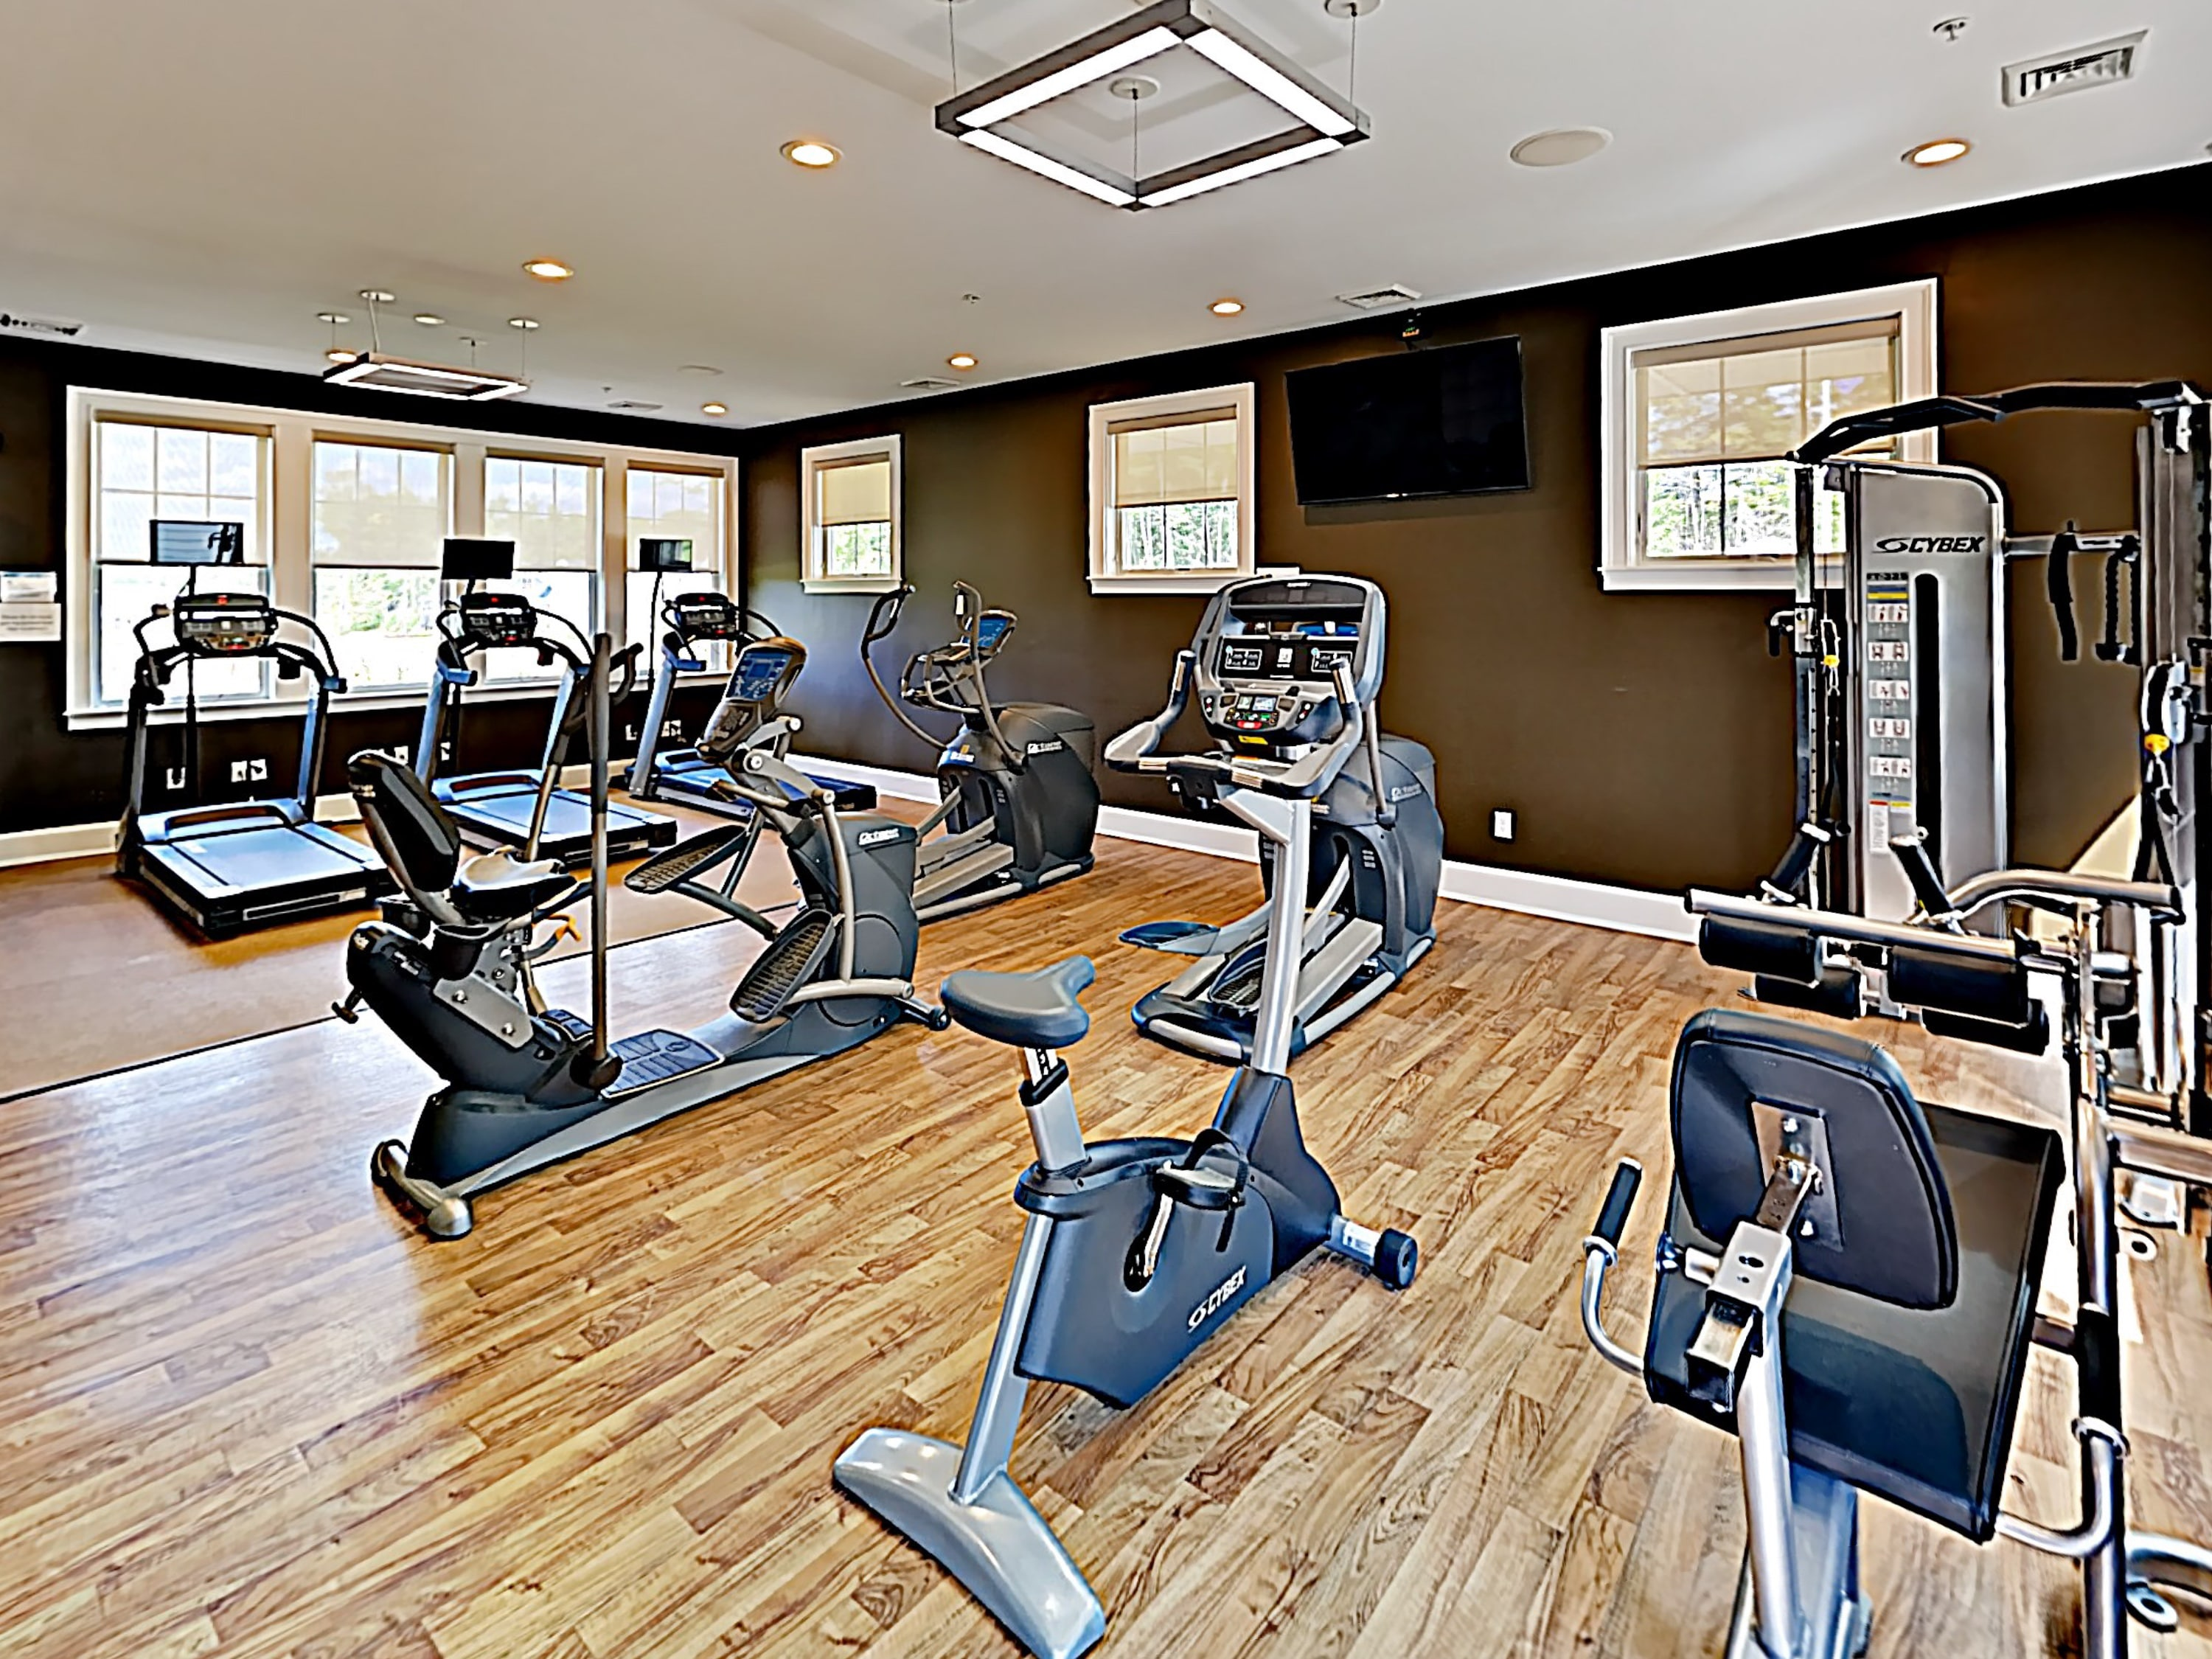 A fitness center helps you stick to your workout routine.